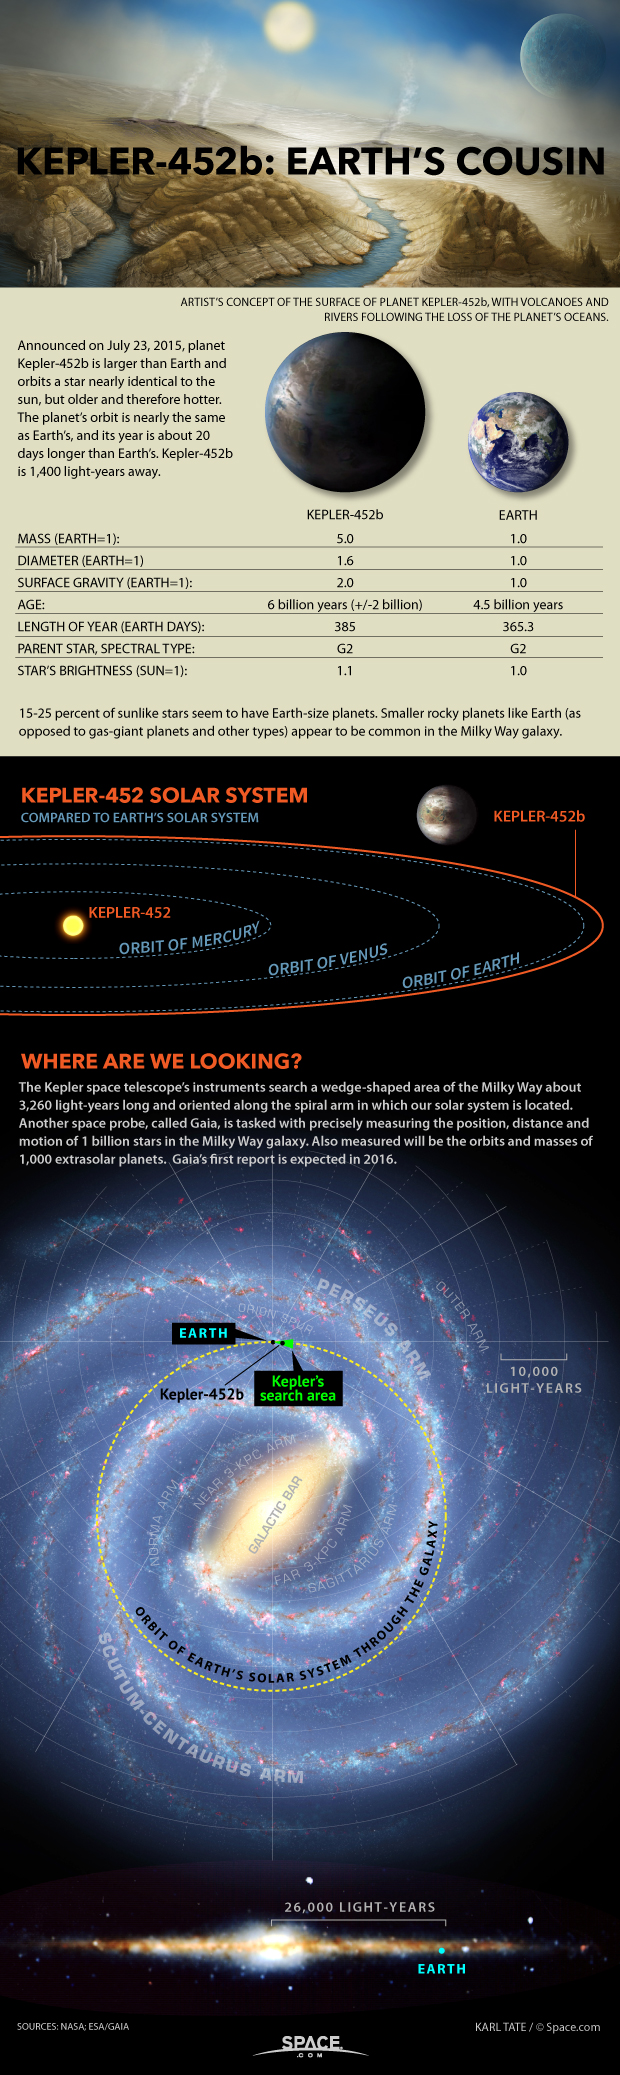 Chart of properties of Kepler-452b.